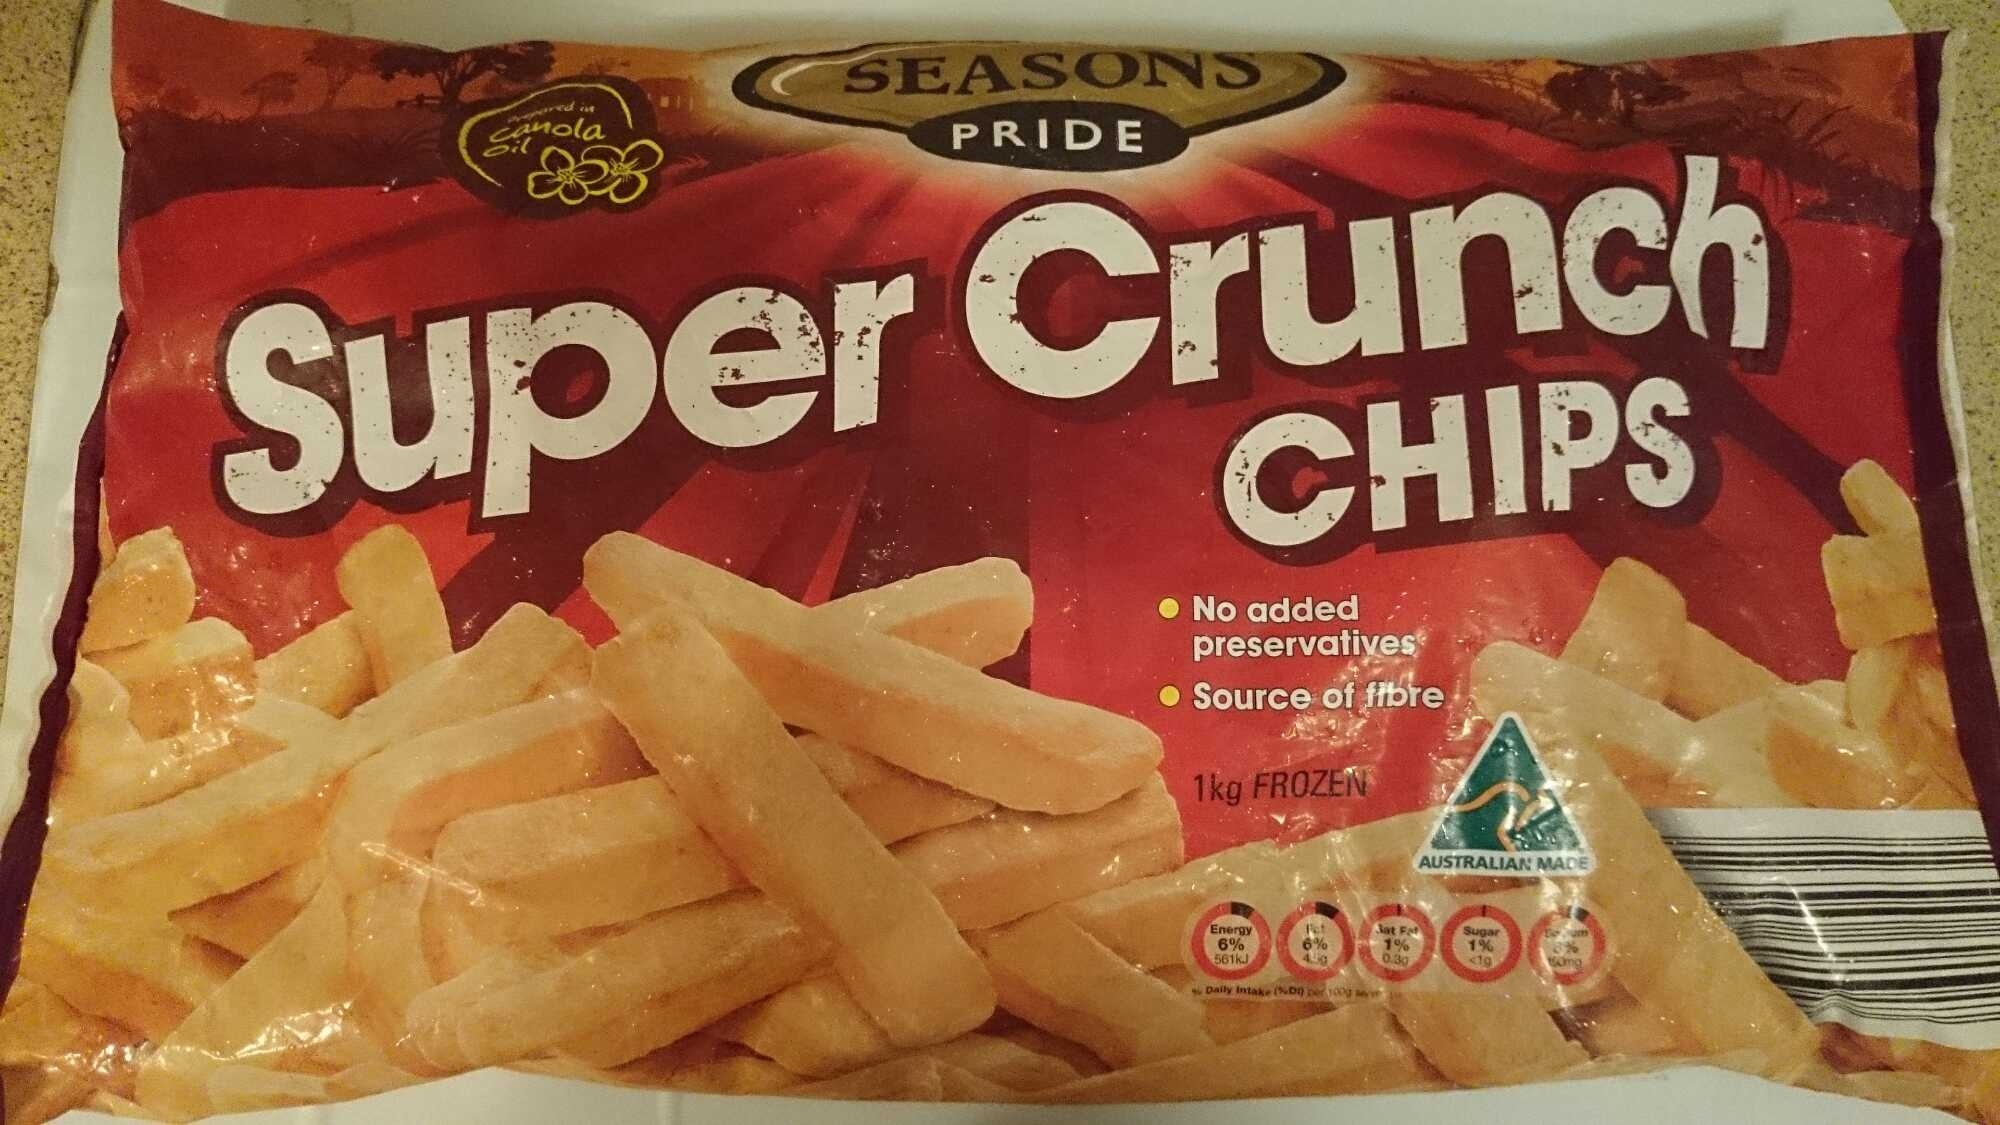 Super Crunch Chips - Product